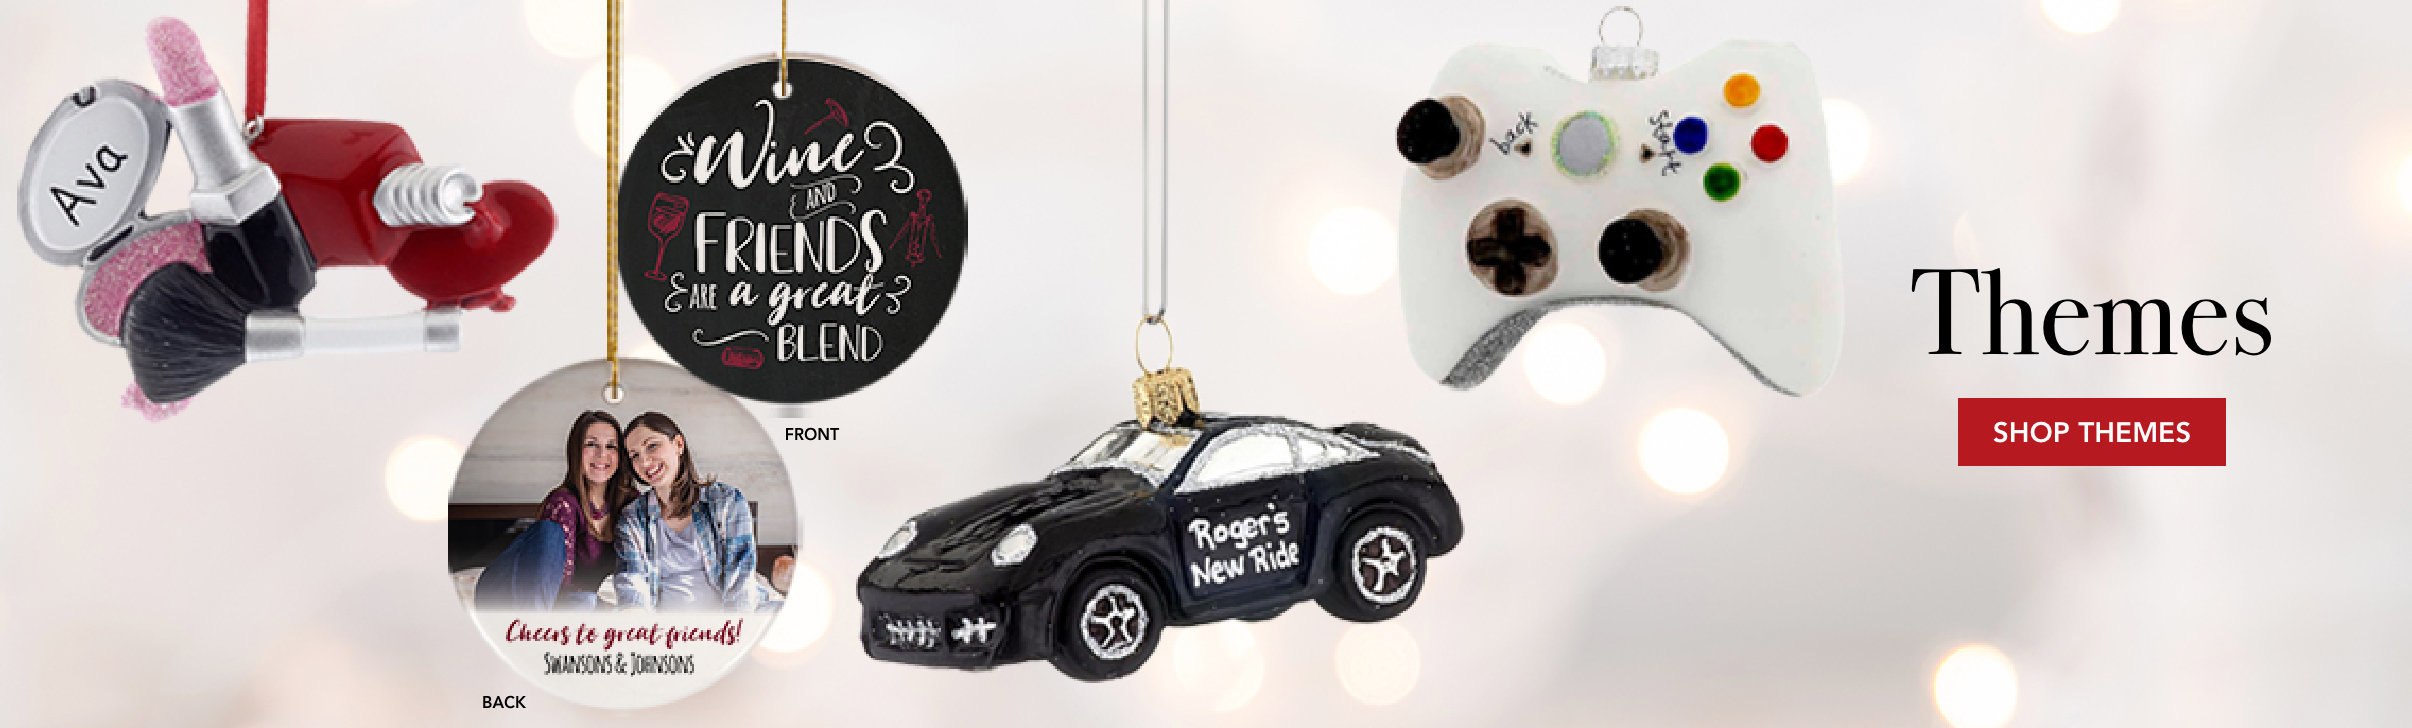 Personalized themed Christmas ornaments